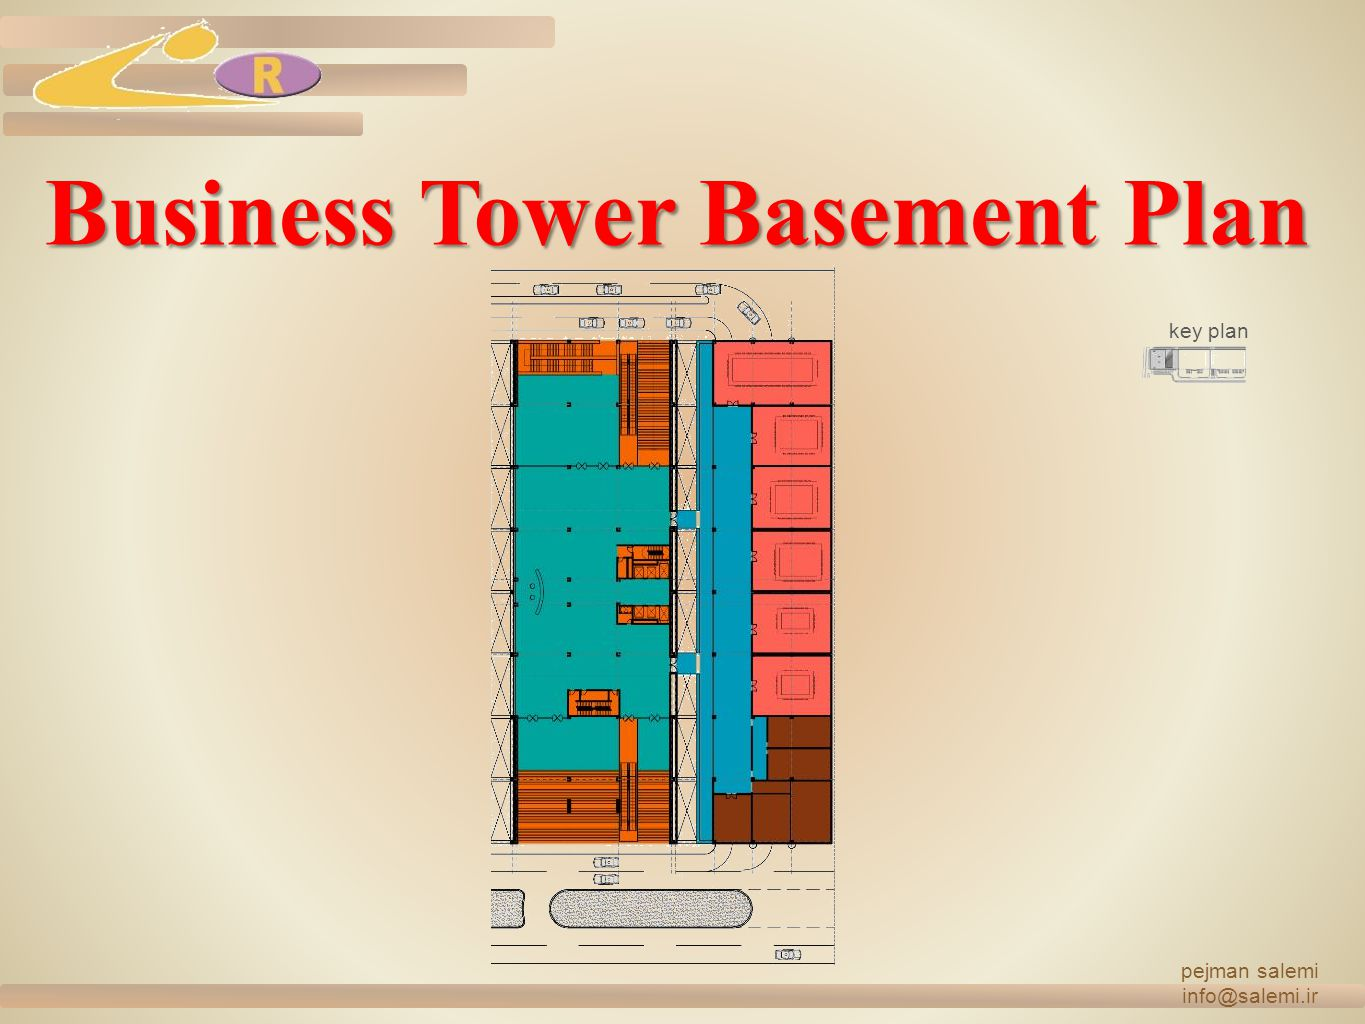 Business Tower Basement Plan